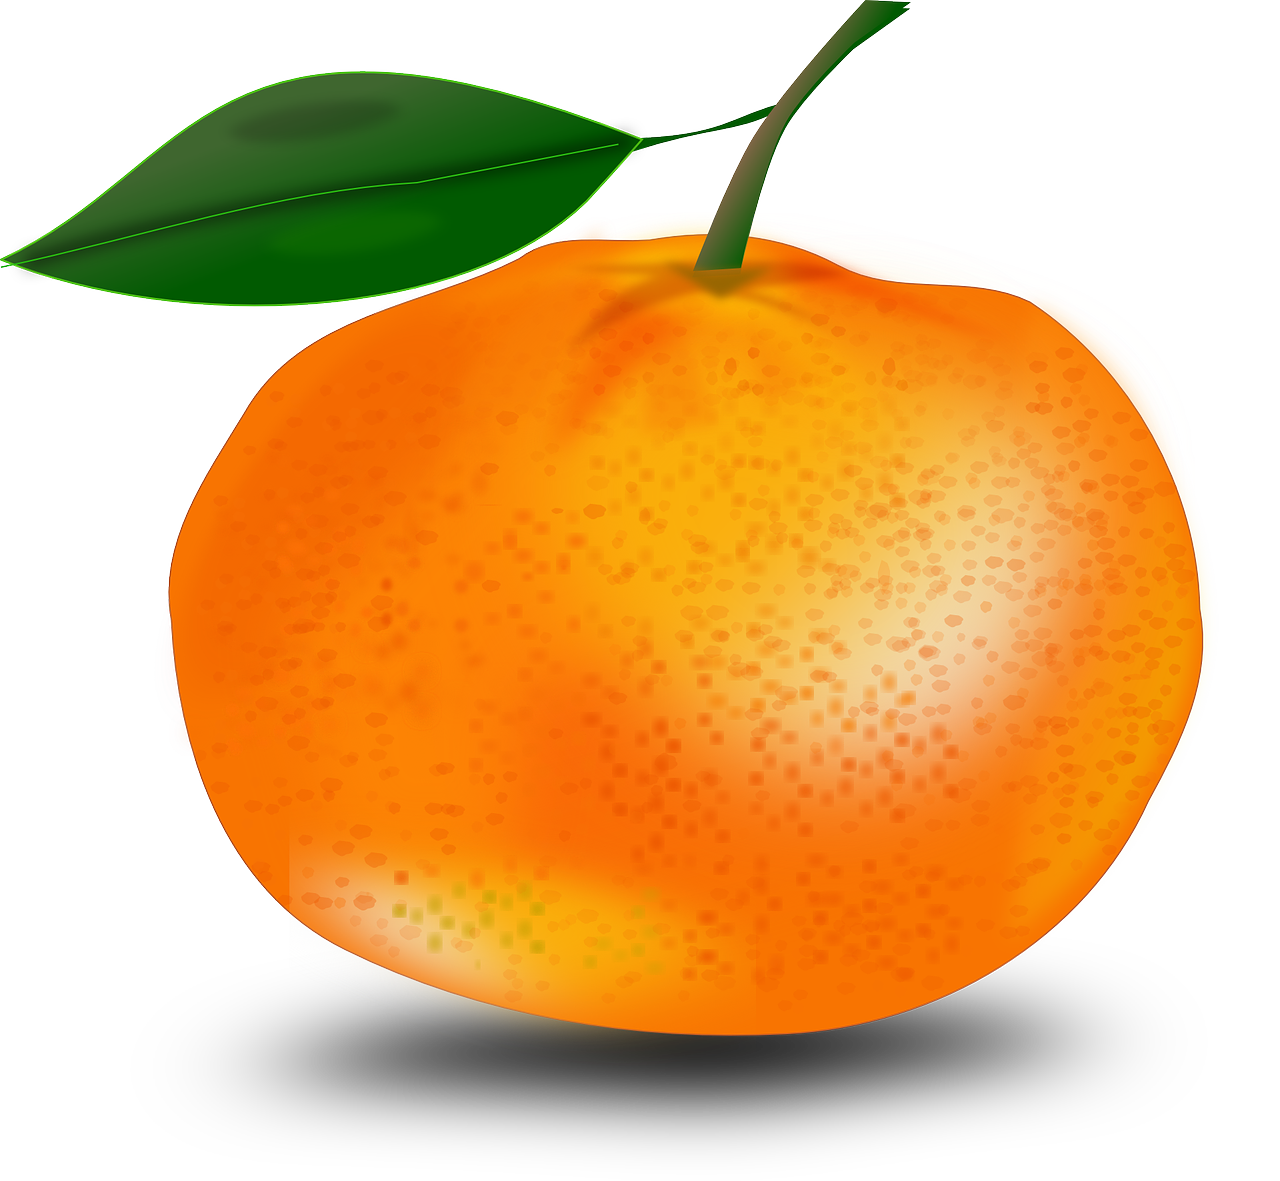 tangerine orange mandarin free photo